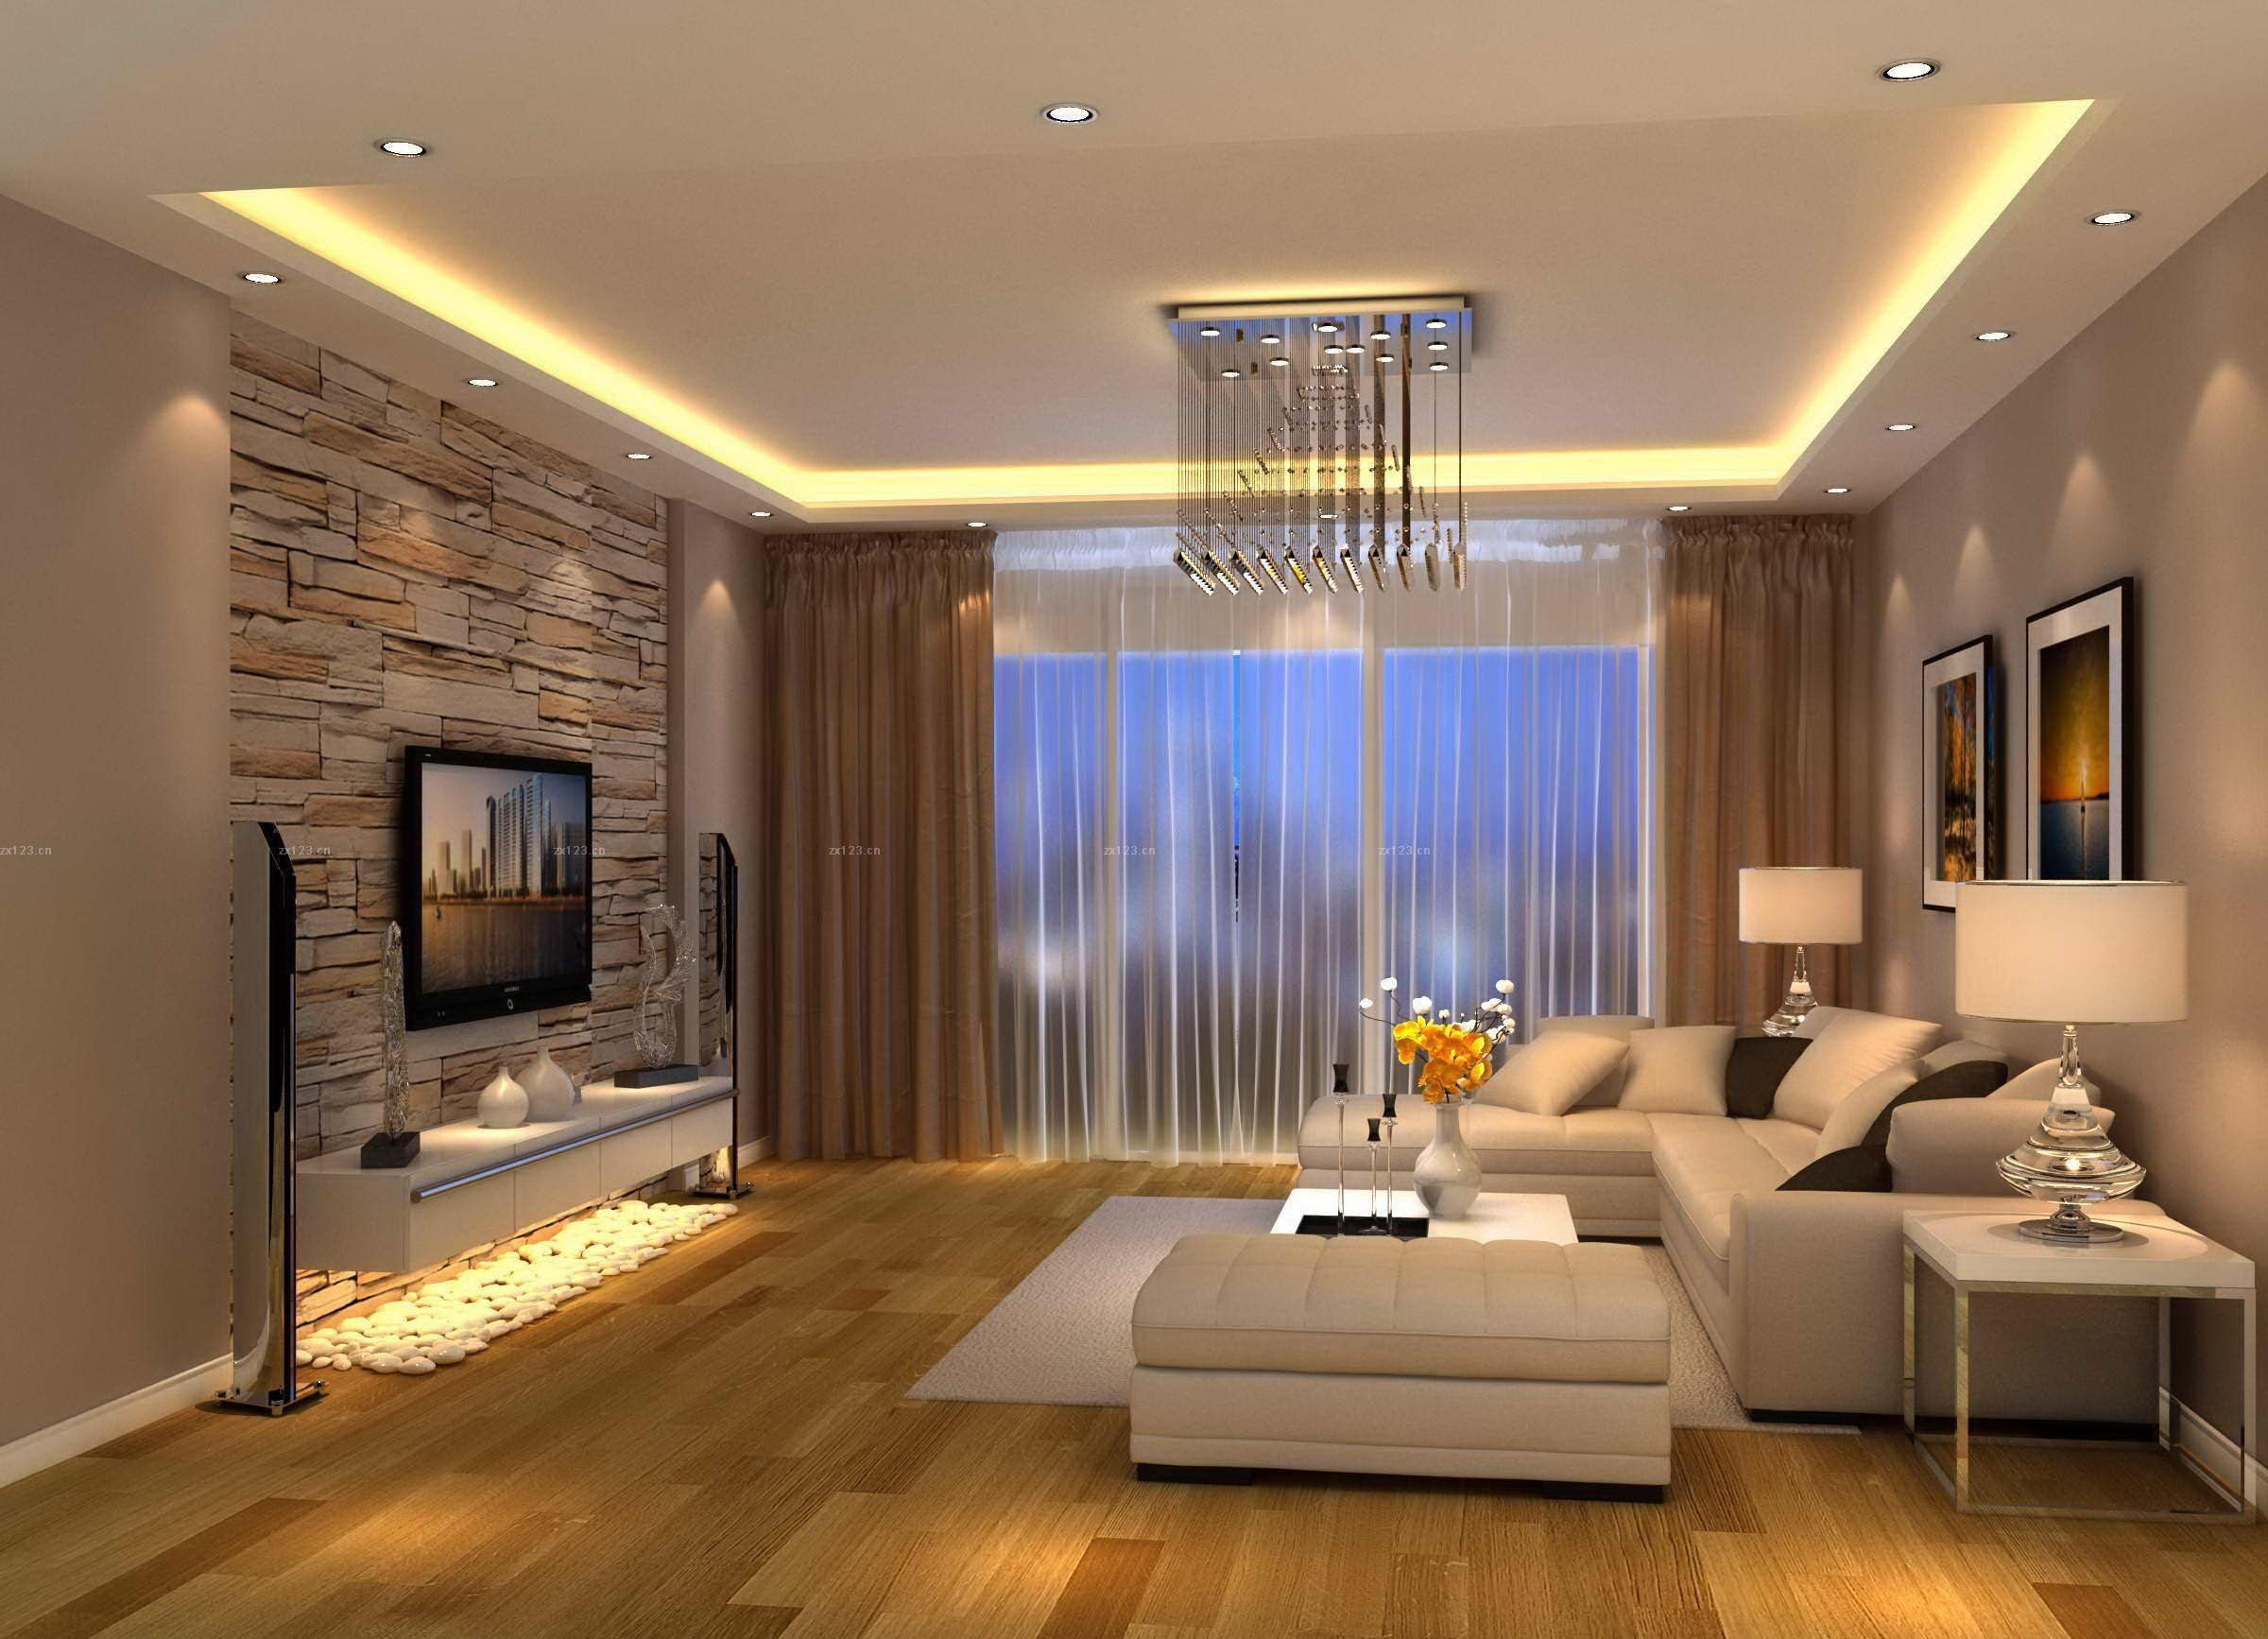 Small Crop Of Interior Design Images Living Room